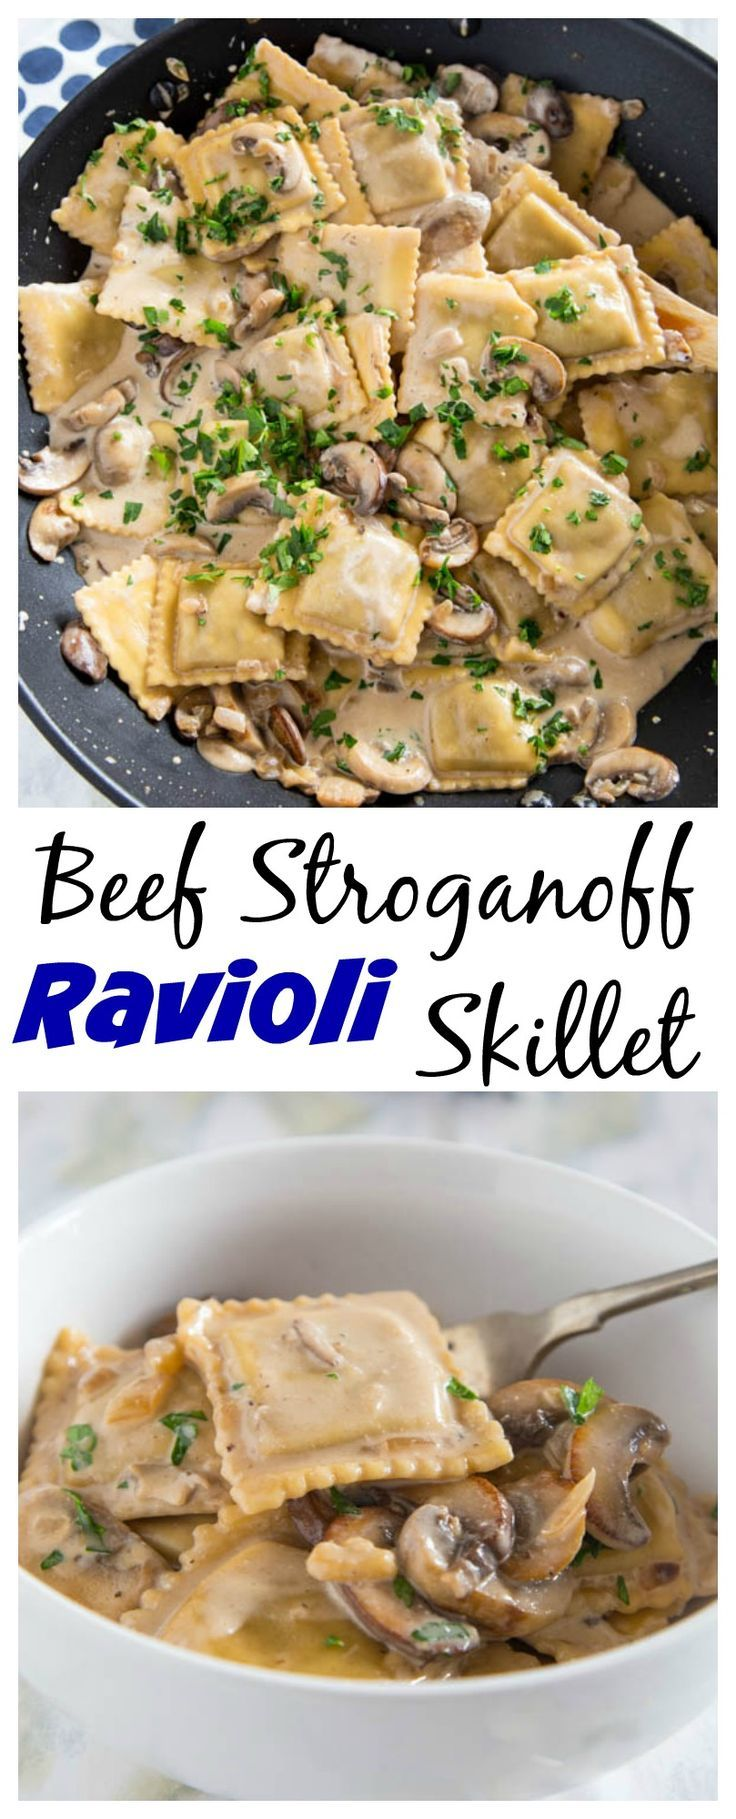 This beef stroganoff ravioli skillet is a quick and easy weeknight meal. All you need is one pan and 20 minutes!